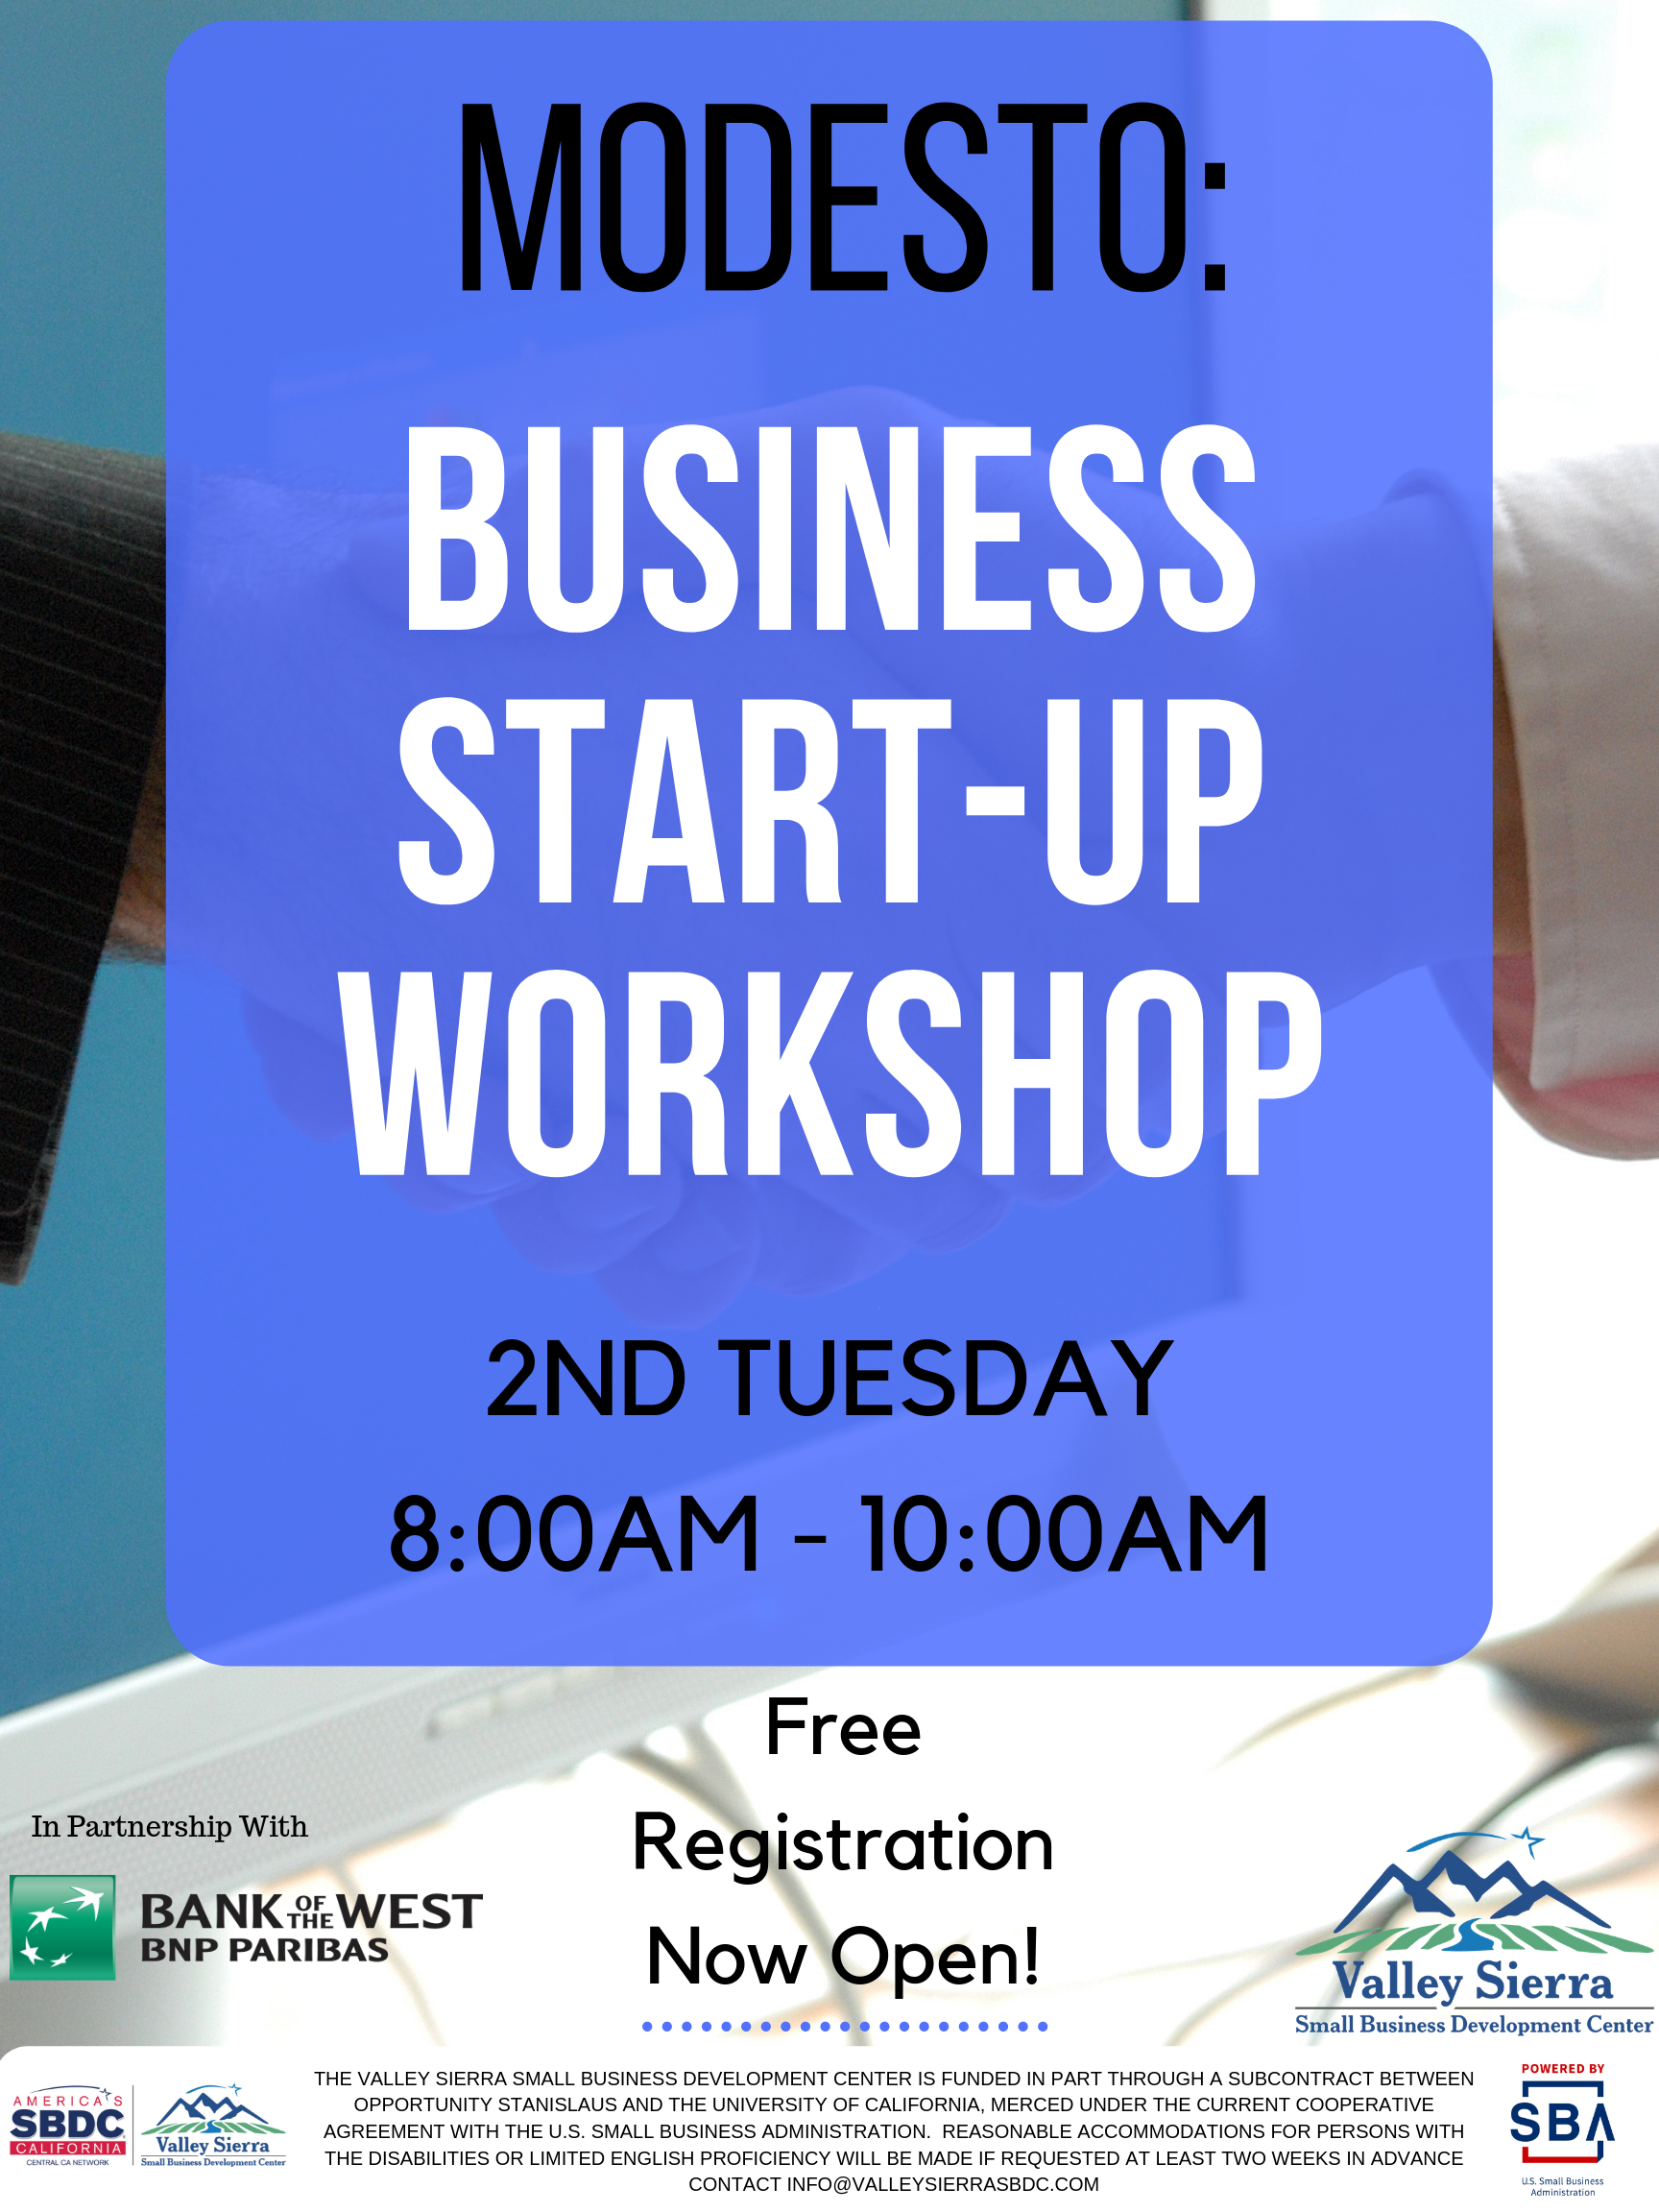 Event Flyer, Modesto: Business Start-Up Workshop, 2nd Tuesday, 8:00am - 10:00am. Free Registration Now Open! Tuesday, December 10th, 2019 at the Valley Sierra SBDC. 1625 I Street, Modesto, Ca.